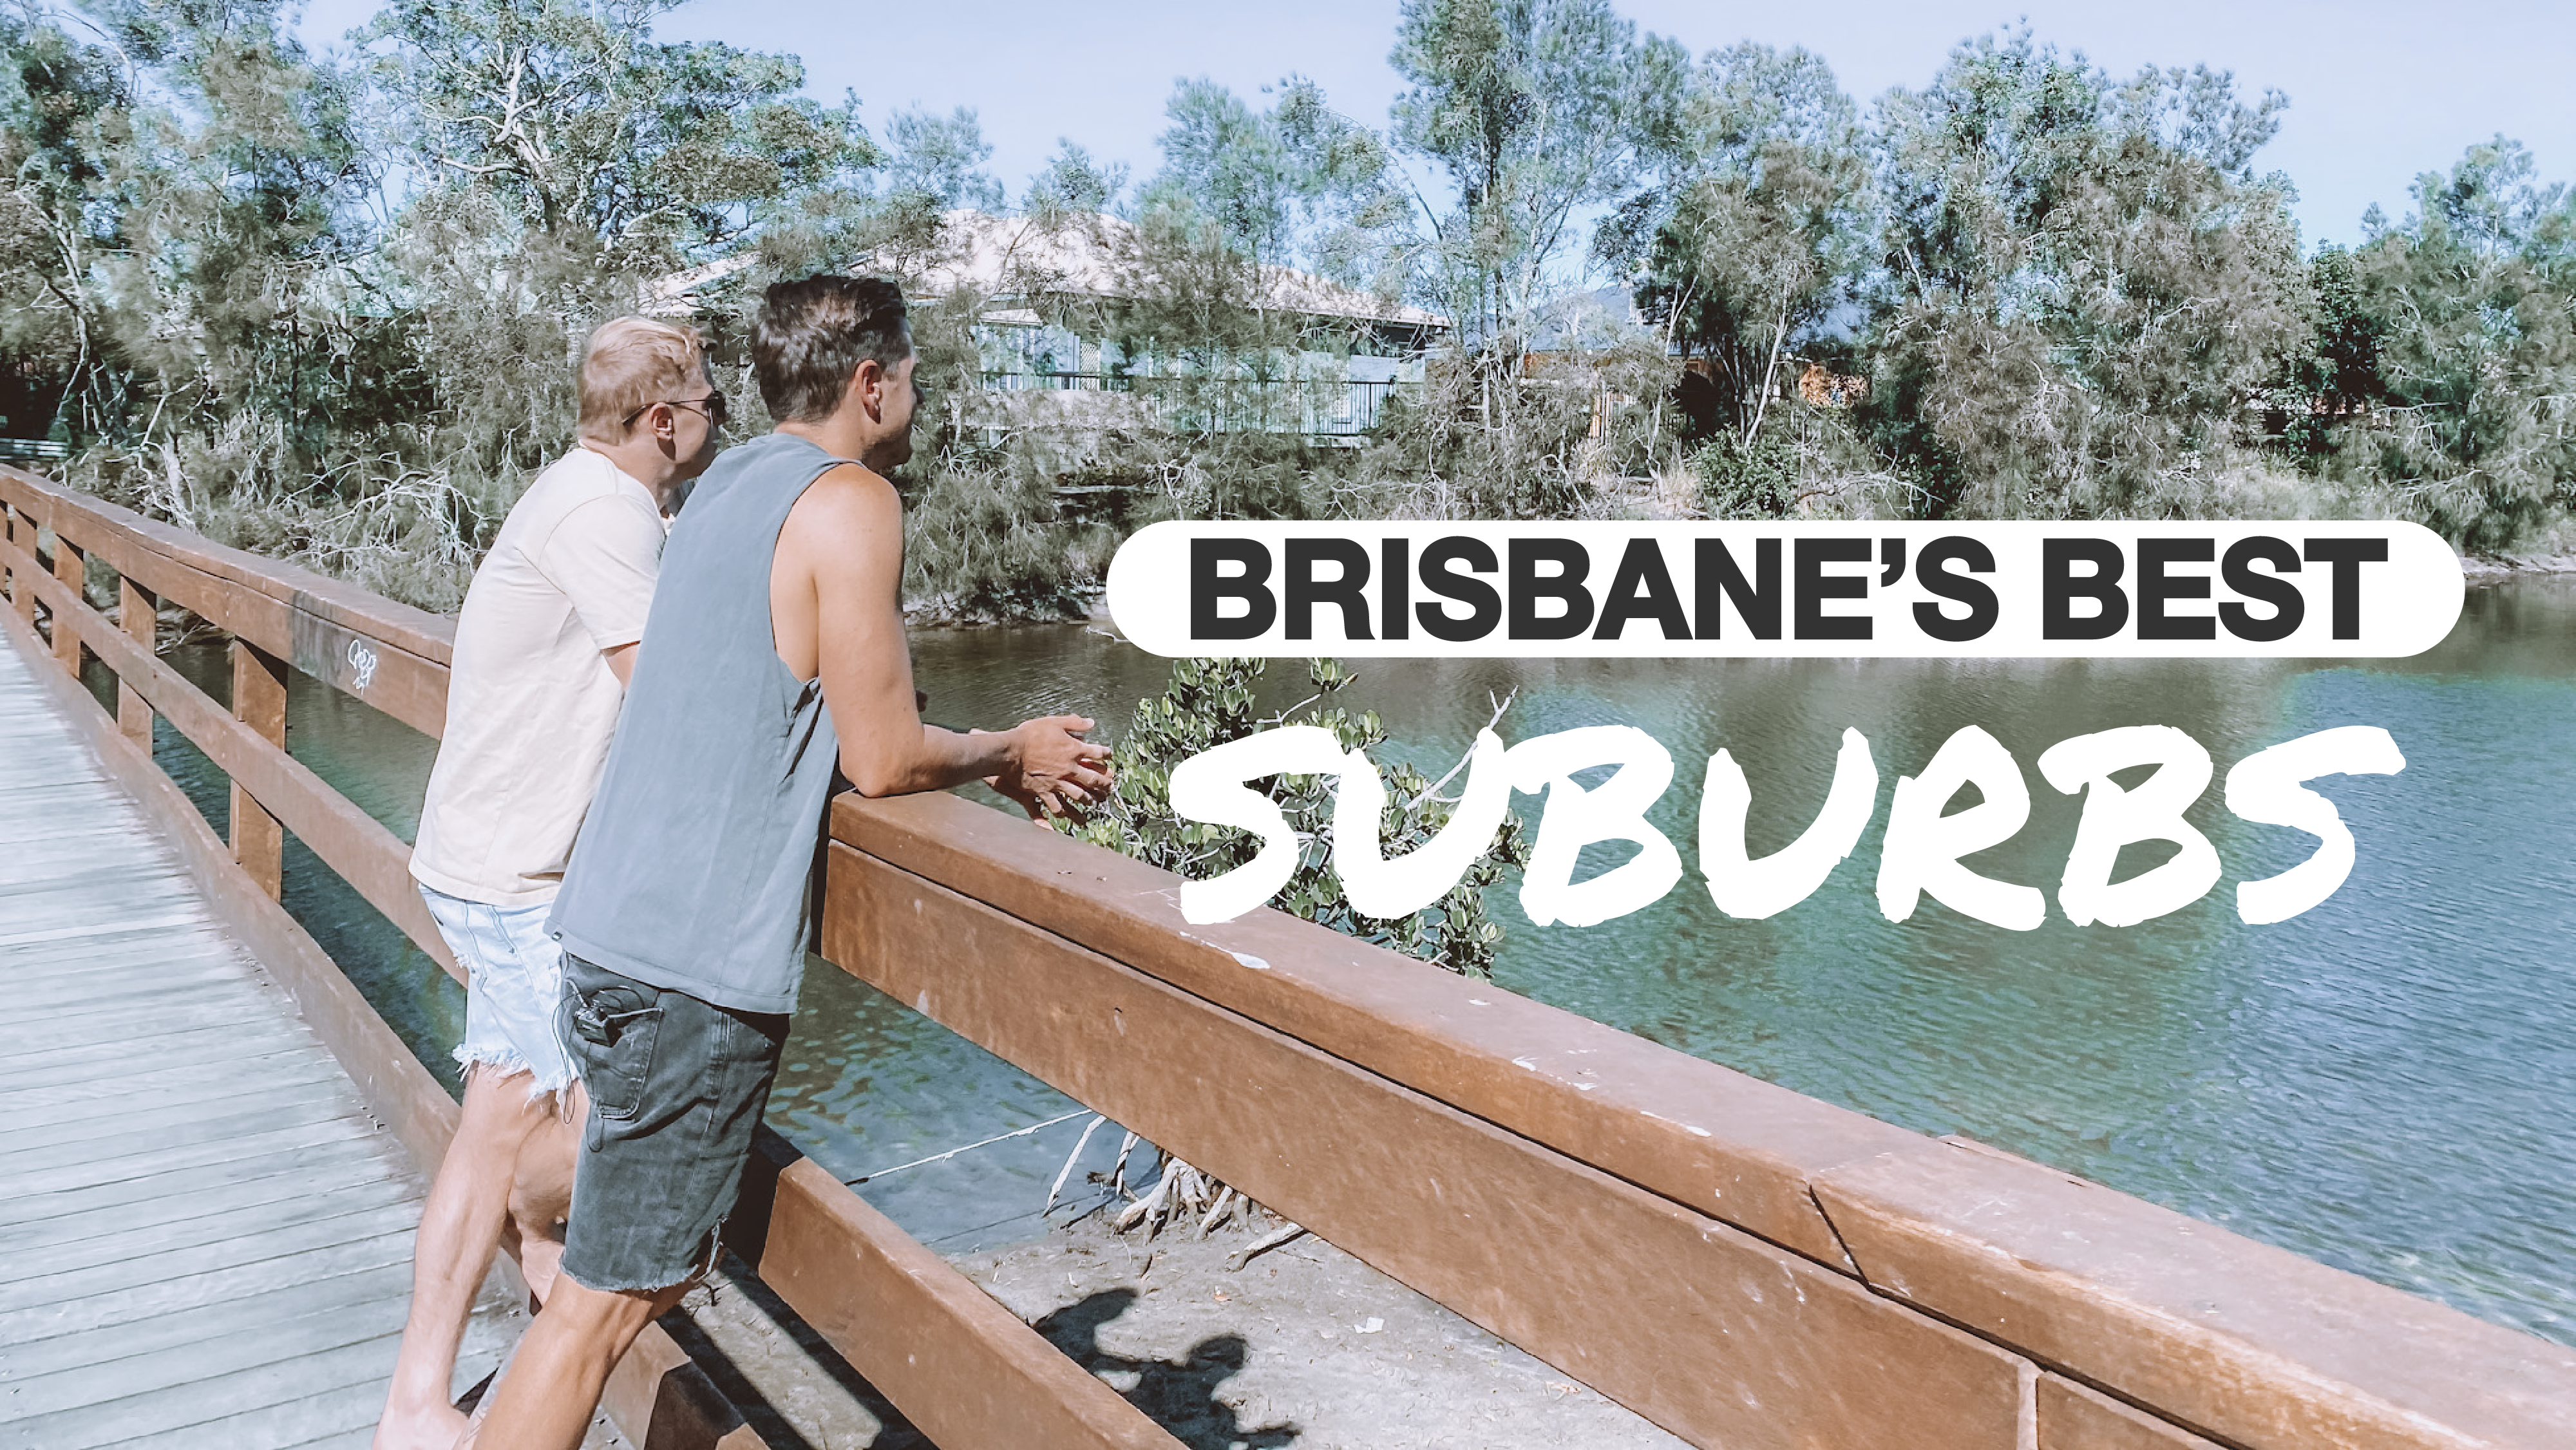 L – How To Find The Best Suburbs In Brisbane